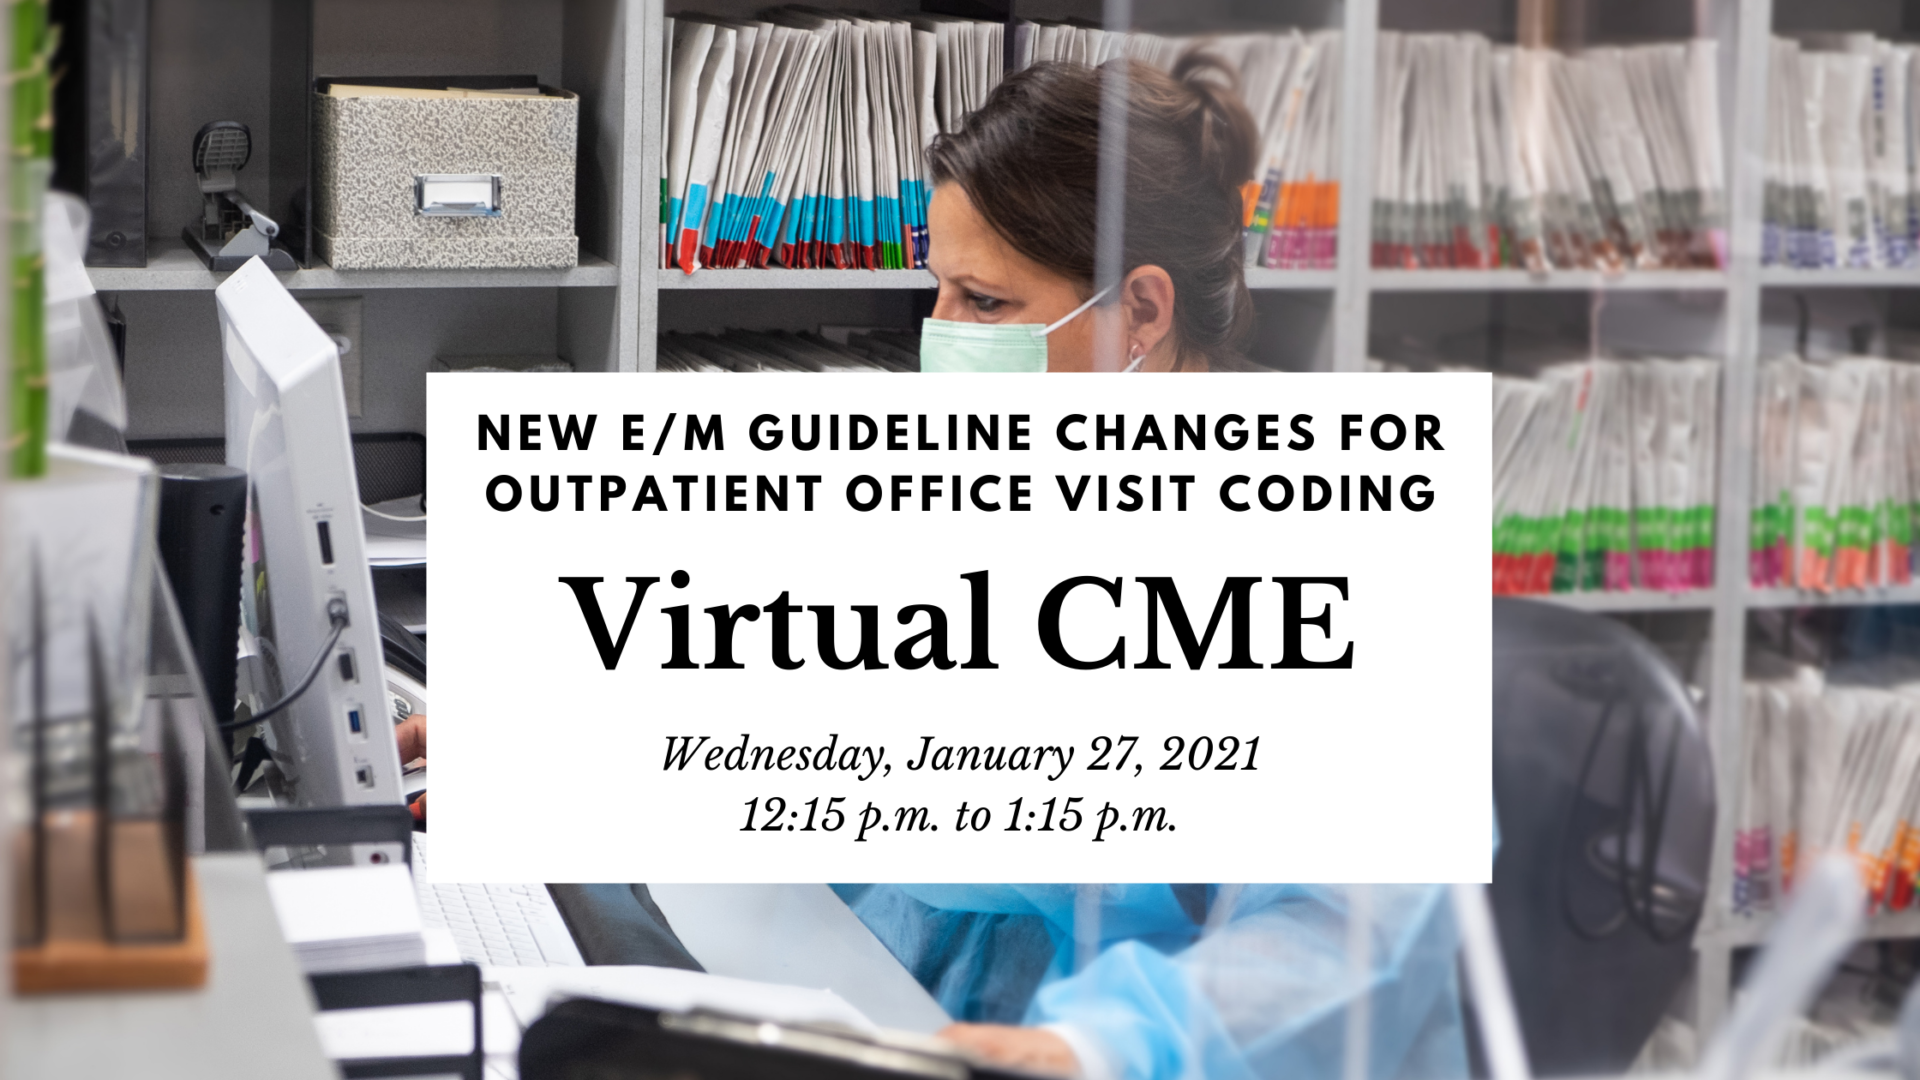 A header image with a background photo and basic information about the Virtual CME